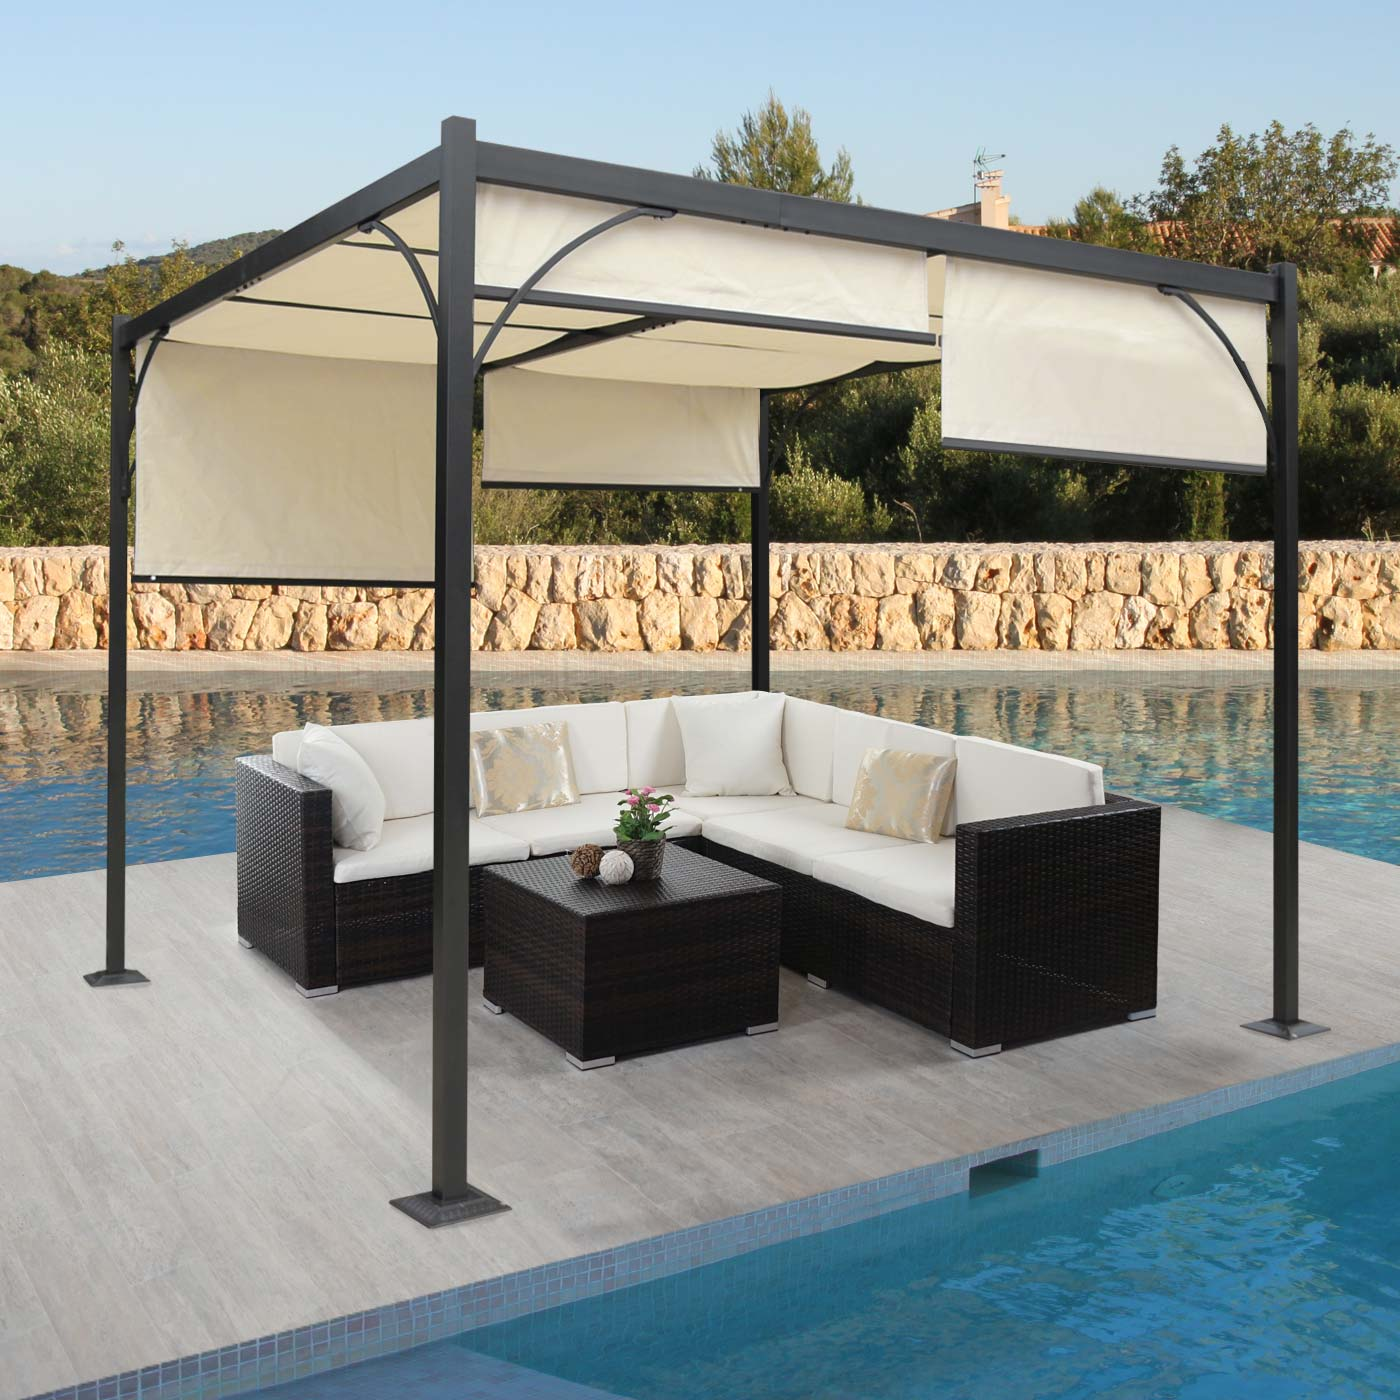 pergola granada pavillon stabiles 6cm alu gestell schiebedach 3x3m kaufen bei mendler. Black Bedroom Furniture Sets. Home Design Ideas